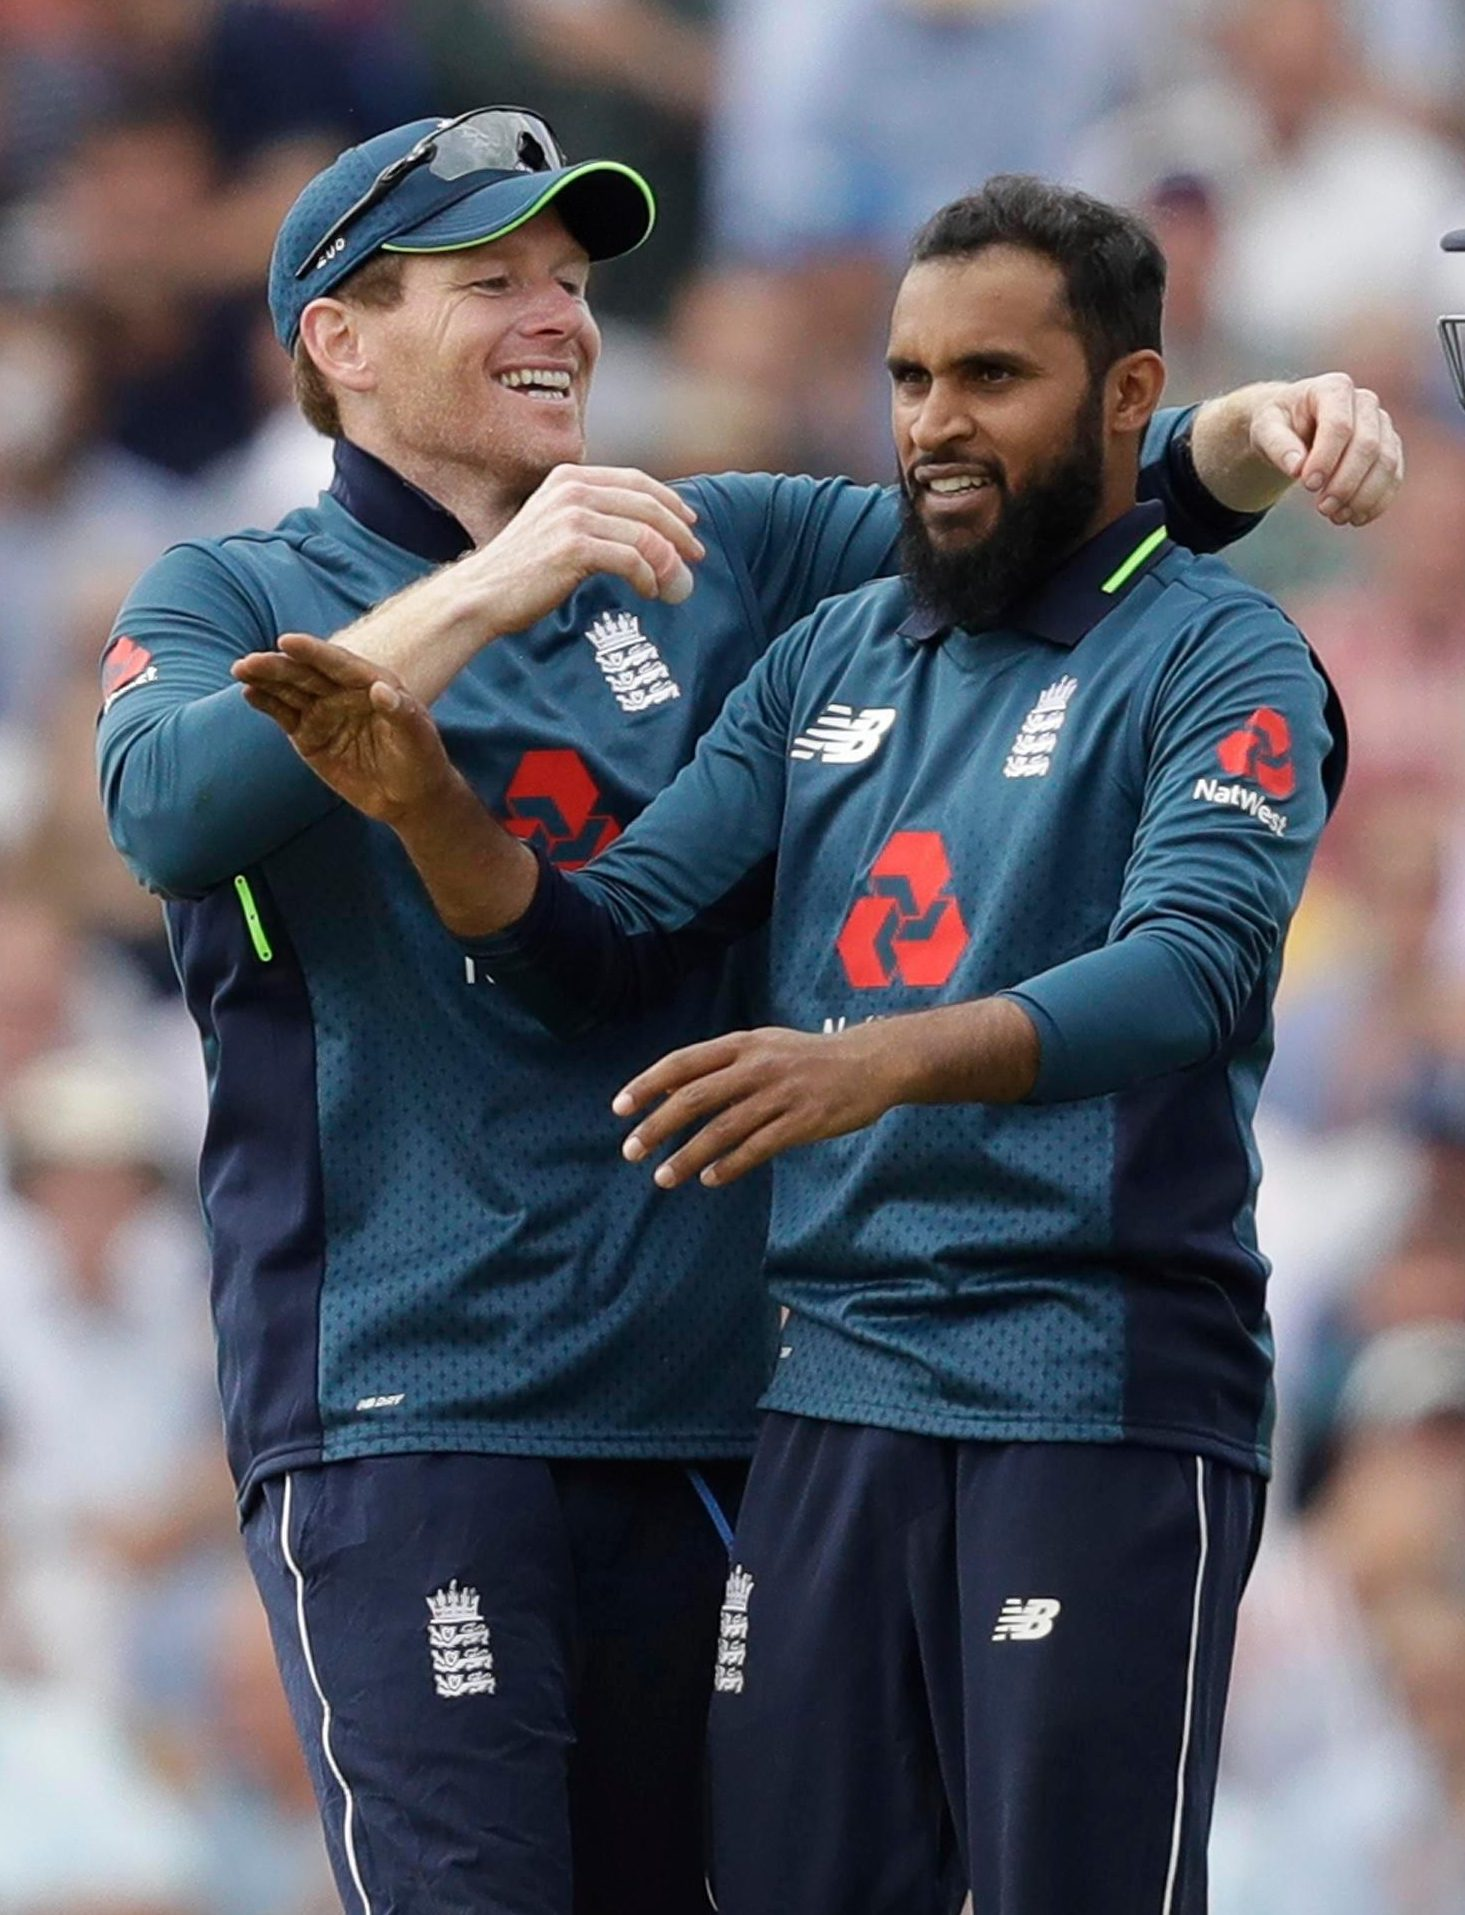 Adil Rashid hopes to celebrate his Test recall with more wickets in the series opener against India at Edgbaston, starting on Thursday